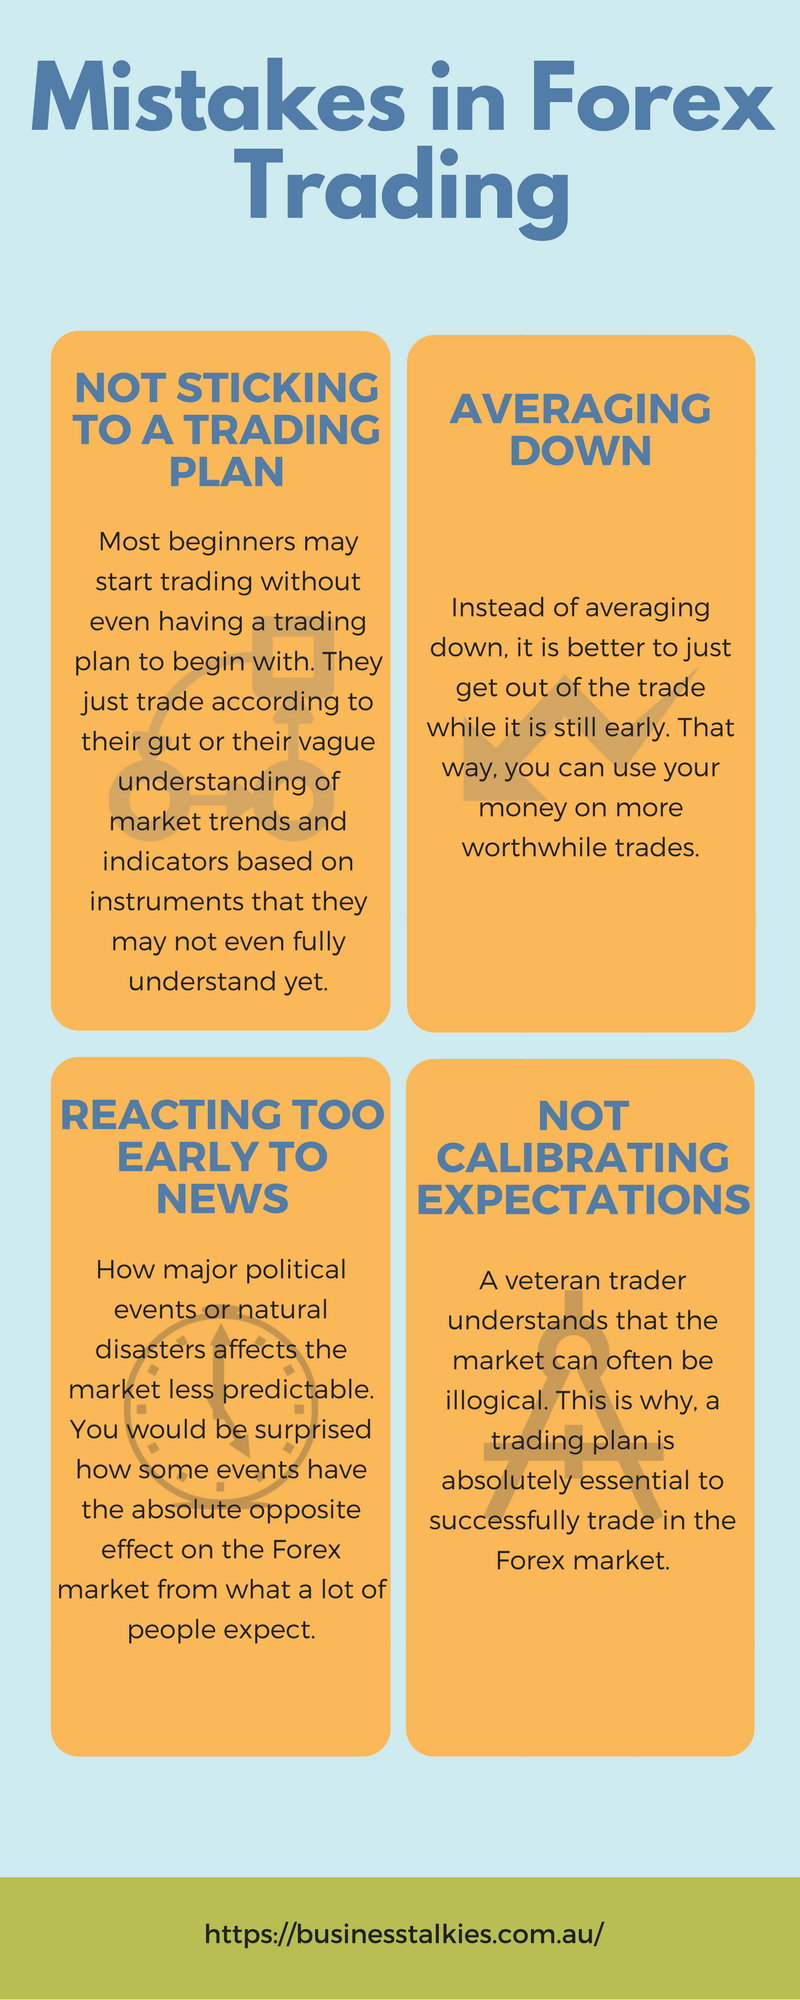 Mistakes in Forex Trading